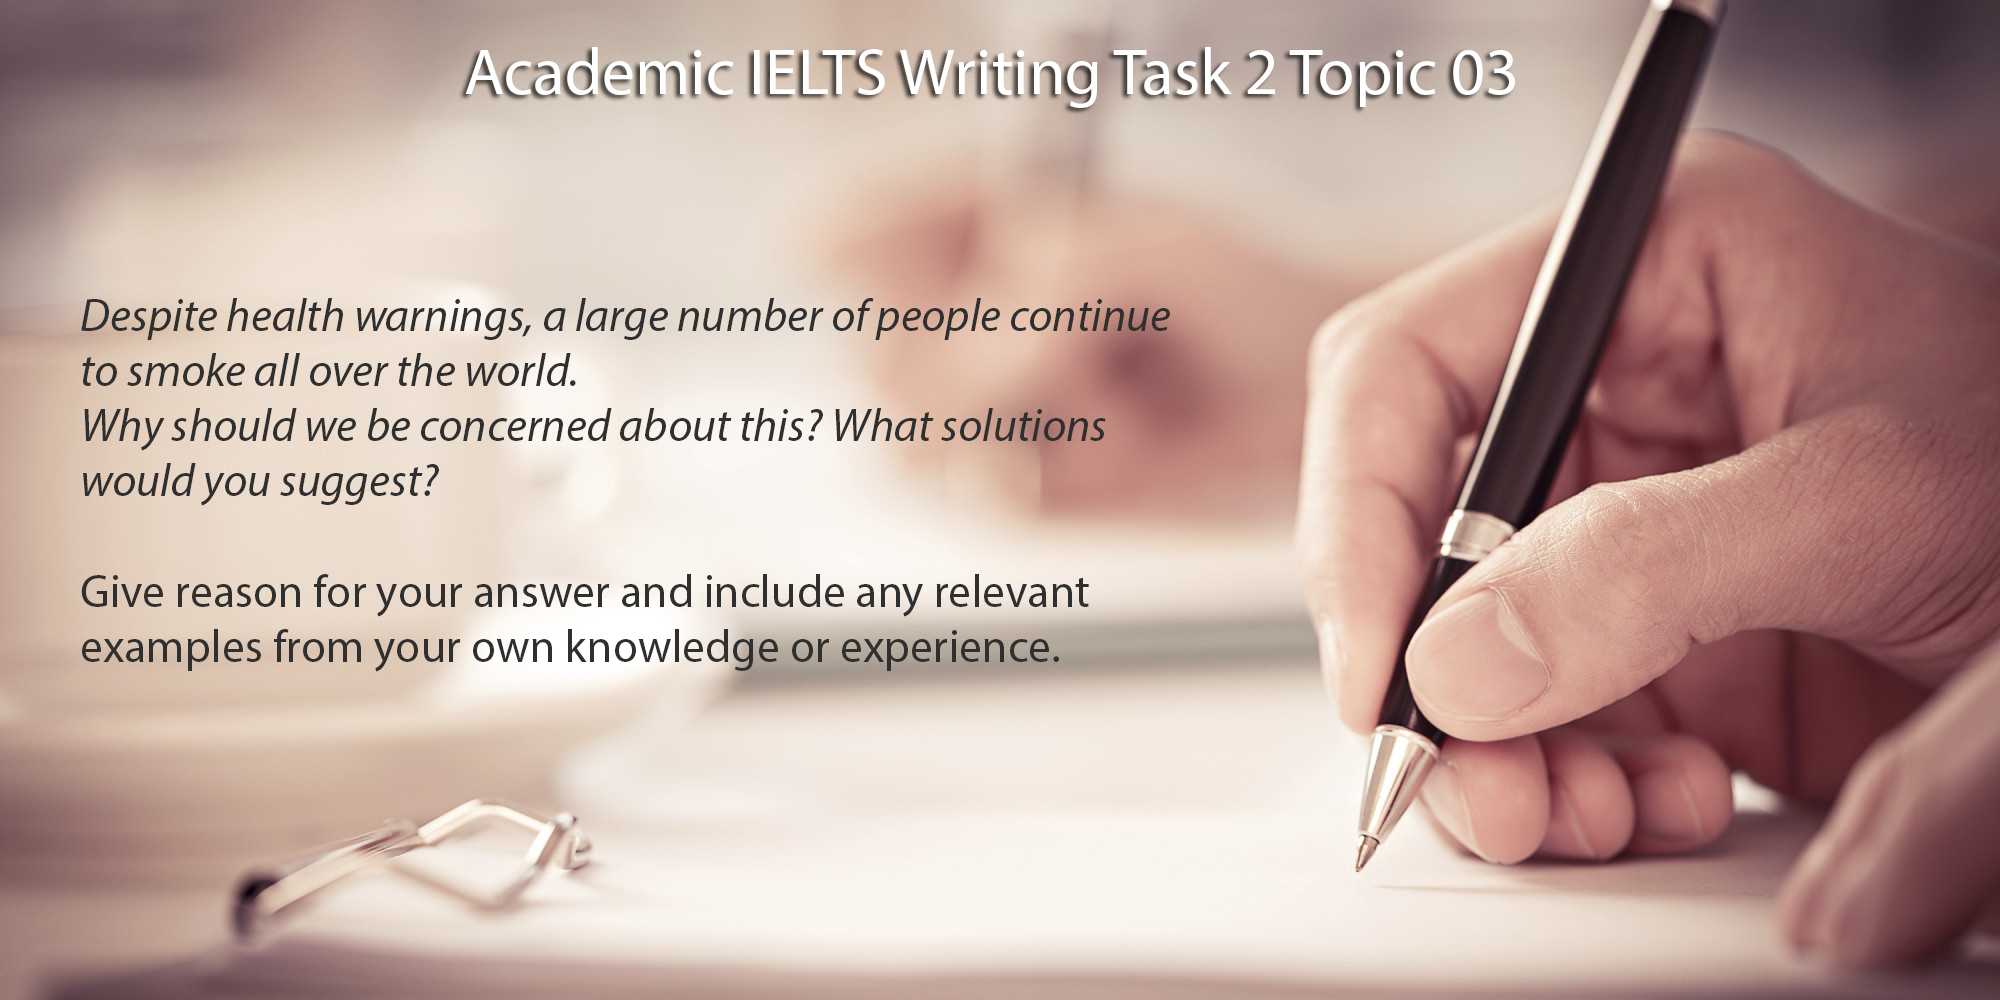 Academic IELTS Writing Task 2 Topic 03